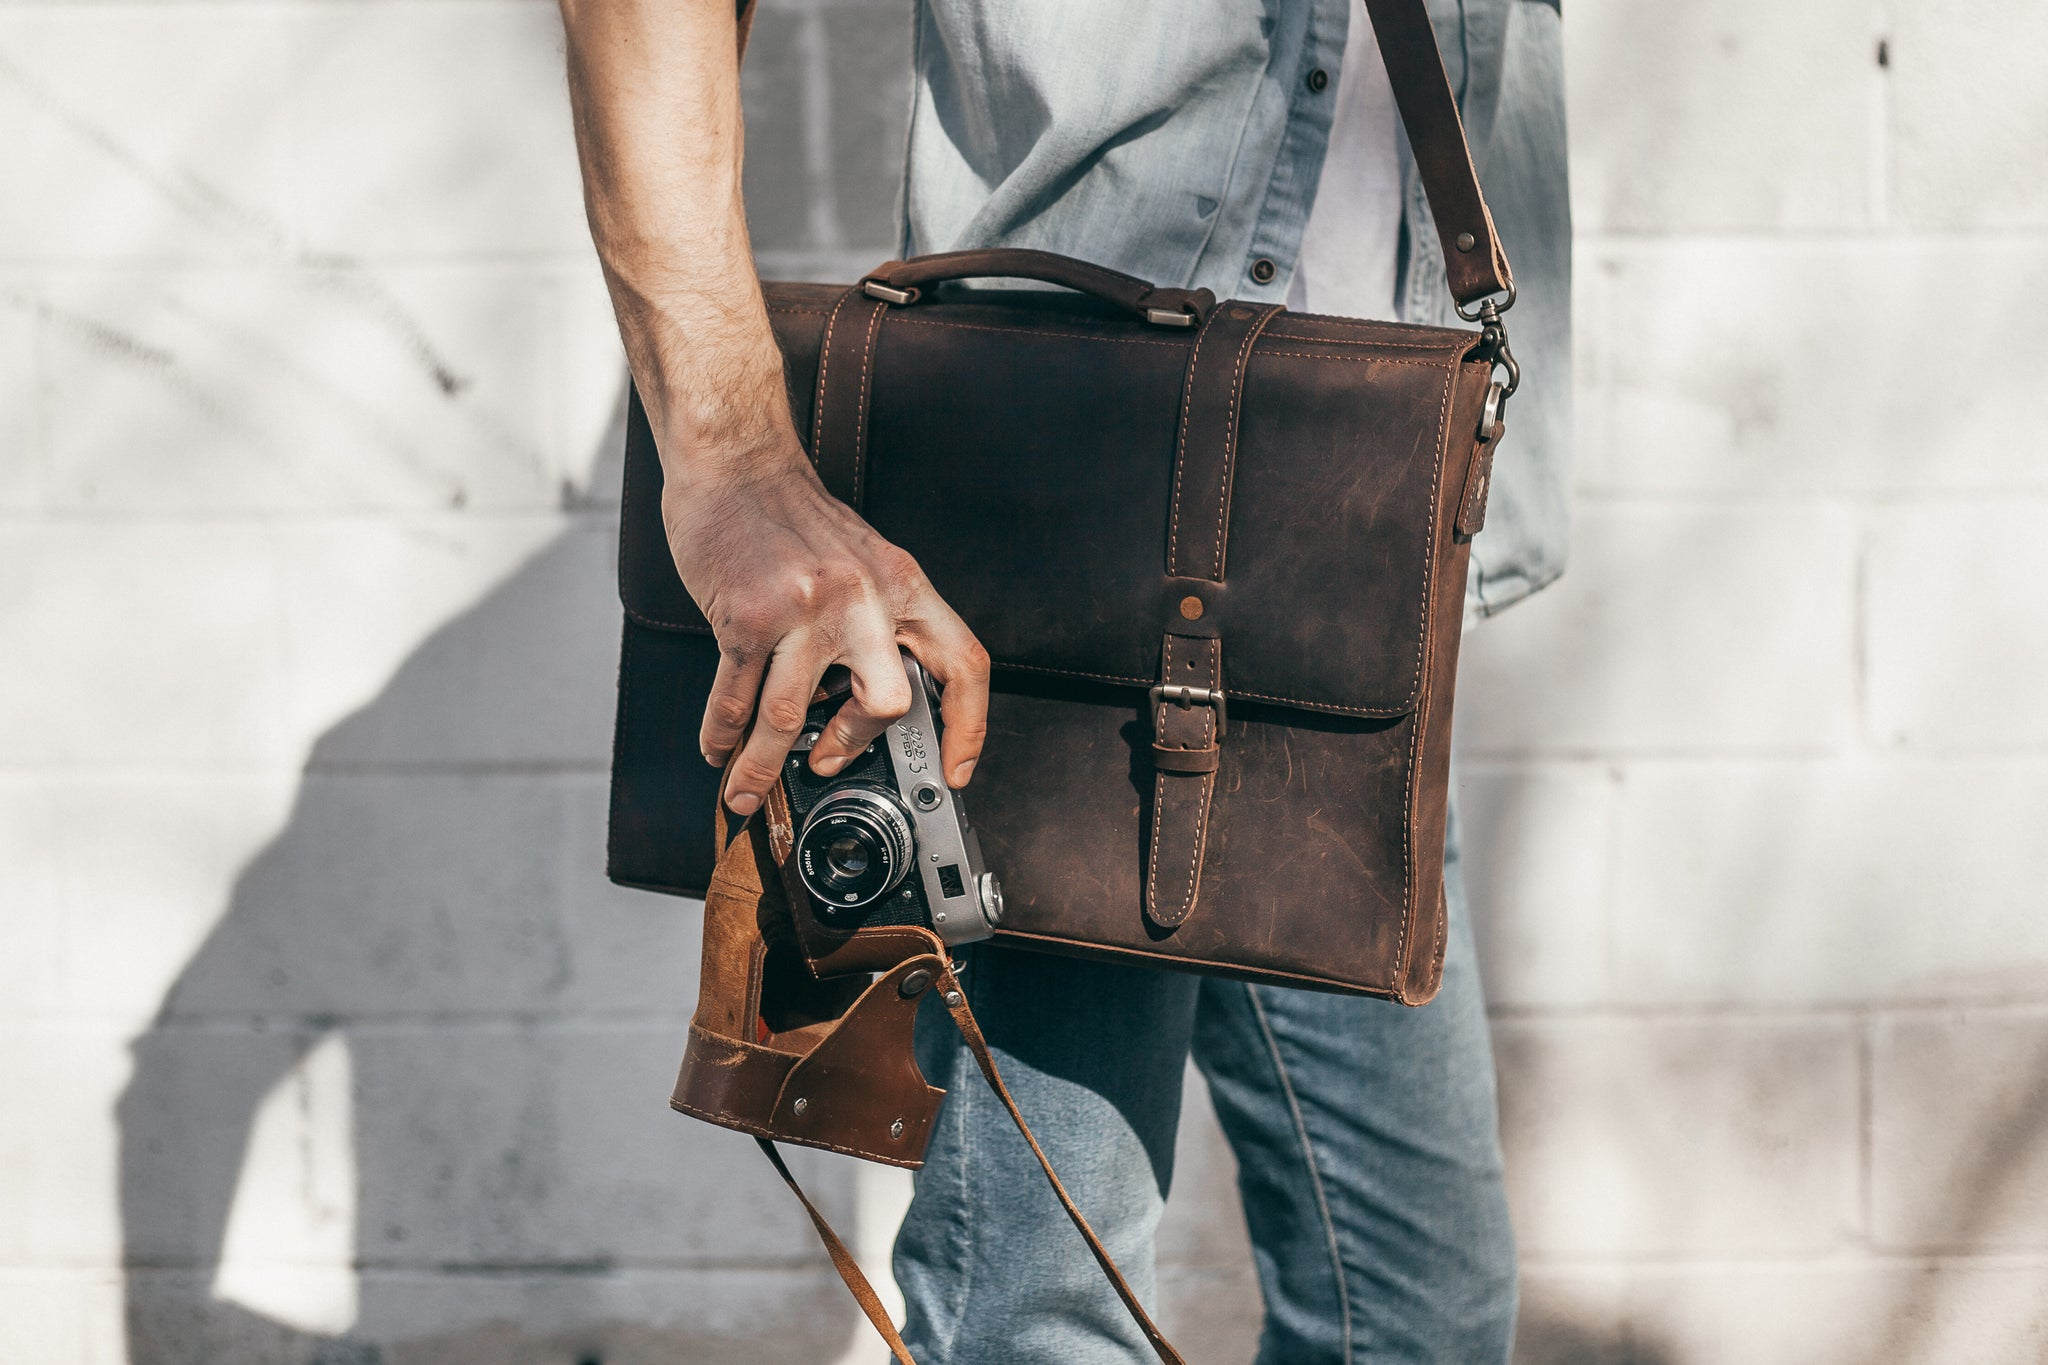 canvas and leather,backpack,waxed,backpack,waxed canvas,duffle bag,canvas rucksack,canvas laptop bag,rucksack,laptop bag,vintage backpack,canvas backpack,leather backpack,waxed canvas bag,